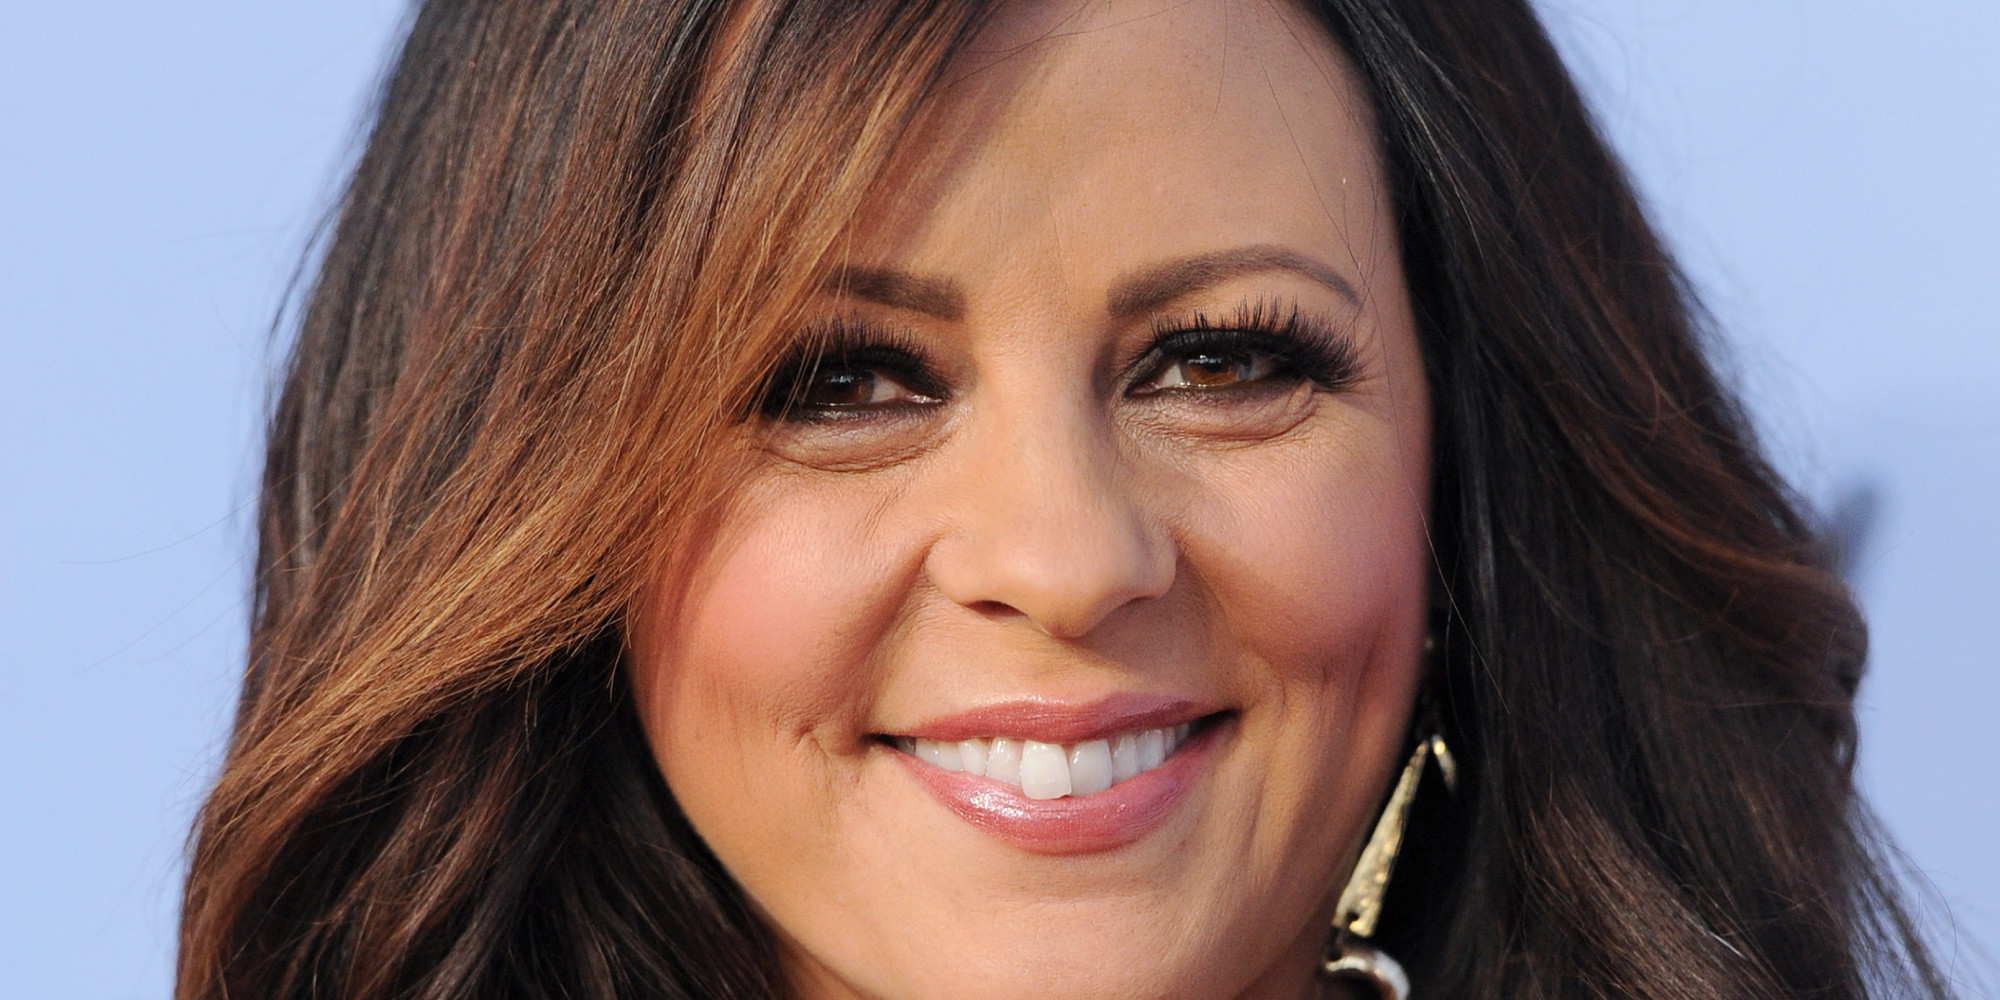 sara evans - cheatin'sara evans - a little bit stronger, sara evans - slow me down, sara evans wiki, sara evans youtube, sara evans shame about that, sara evans - suds in the bucket, sara evans one tree hill, sara evans 2014, sara evans - cheatin', sara evans - no place that far, sara evans discogs, sara evans - perfect, sara evans 3 doors down, sara evans - born to fly, sara evans best songs, sara evans saints and angels, sara evans love you with all my heart lyrics, sara evans lyrics, sara evans coalmine, sara evans stronger